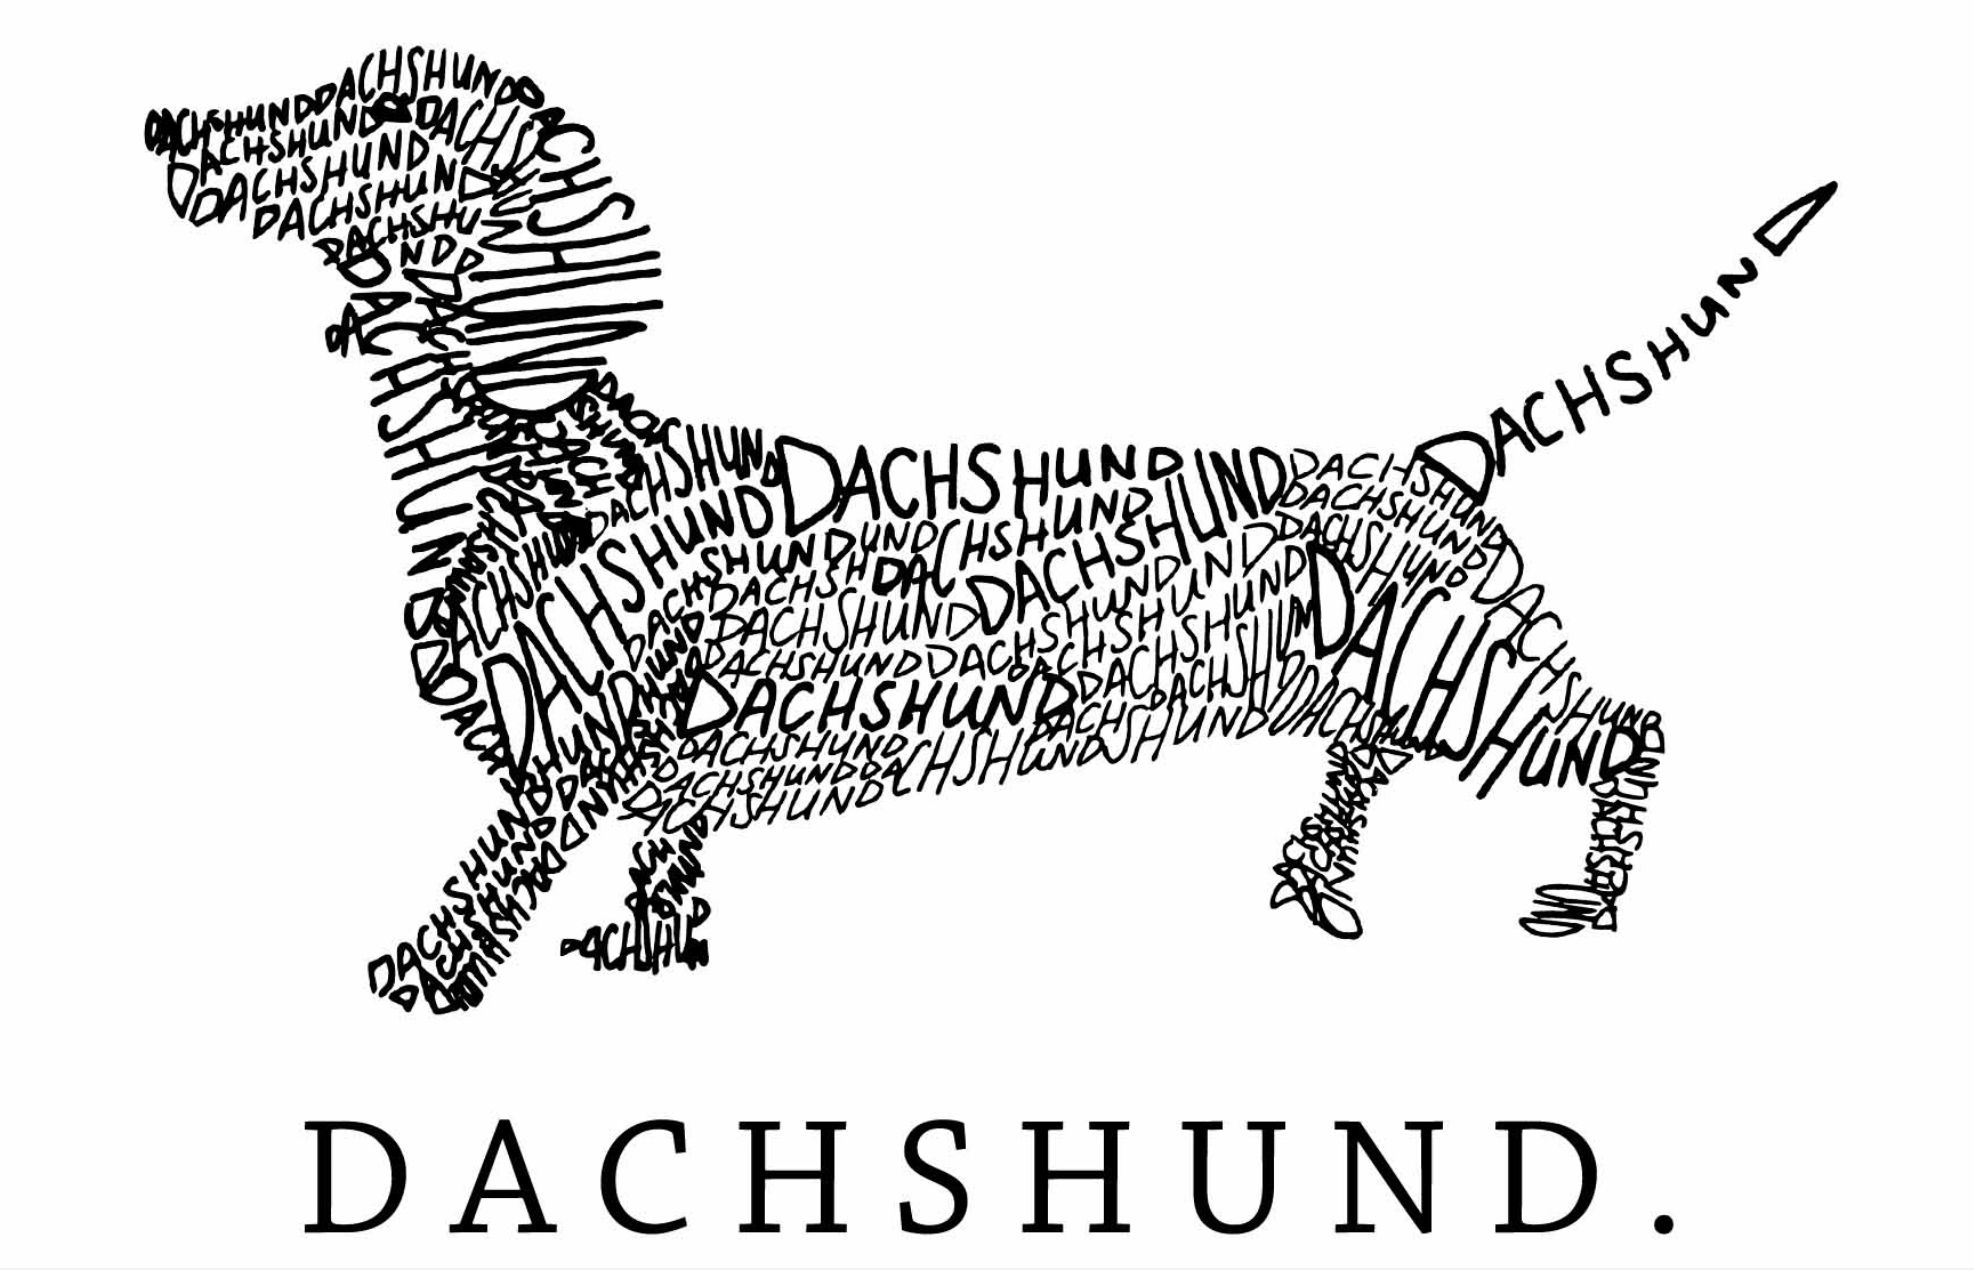 Pin by April Grenier on Crafty (With images) Dachshund